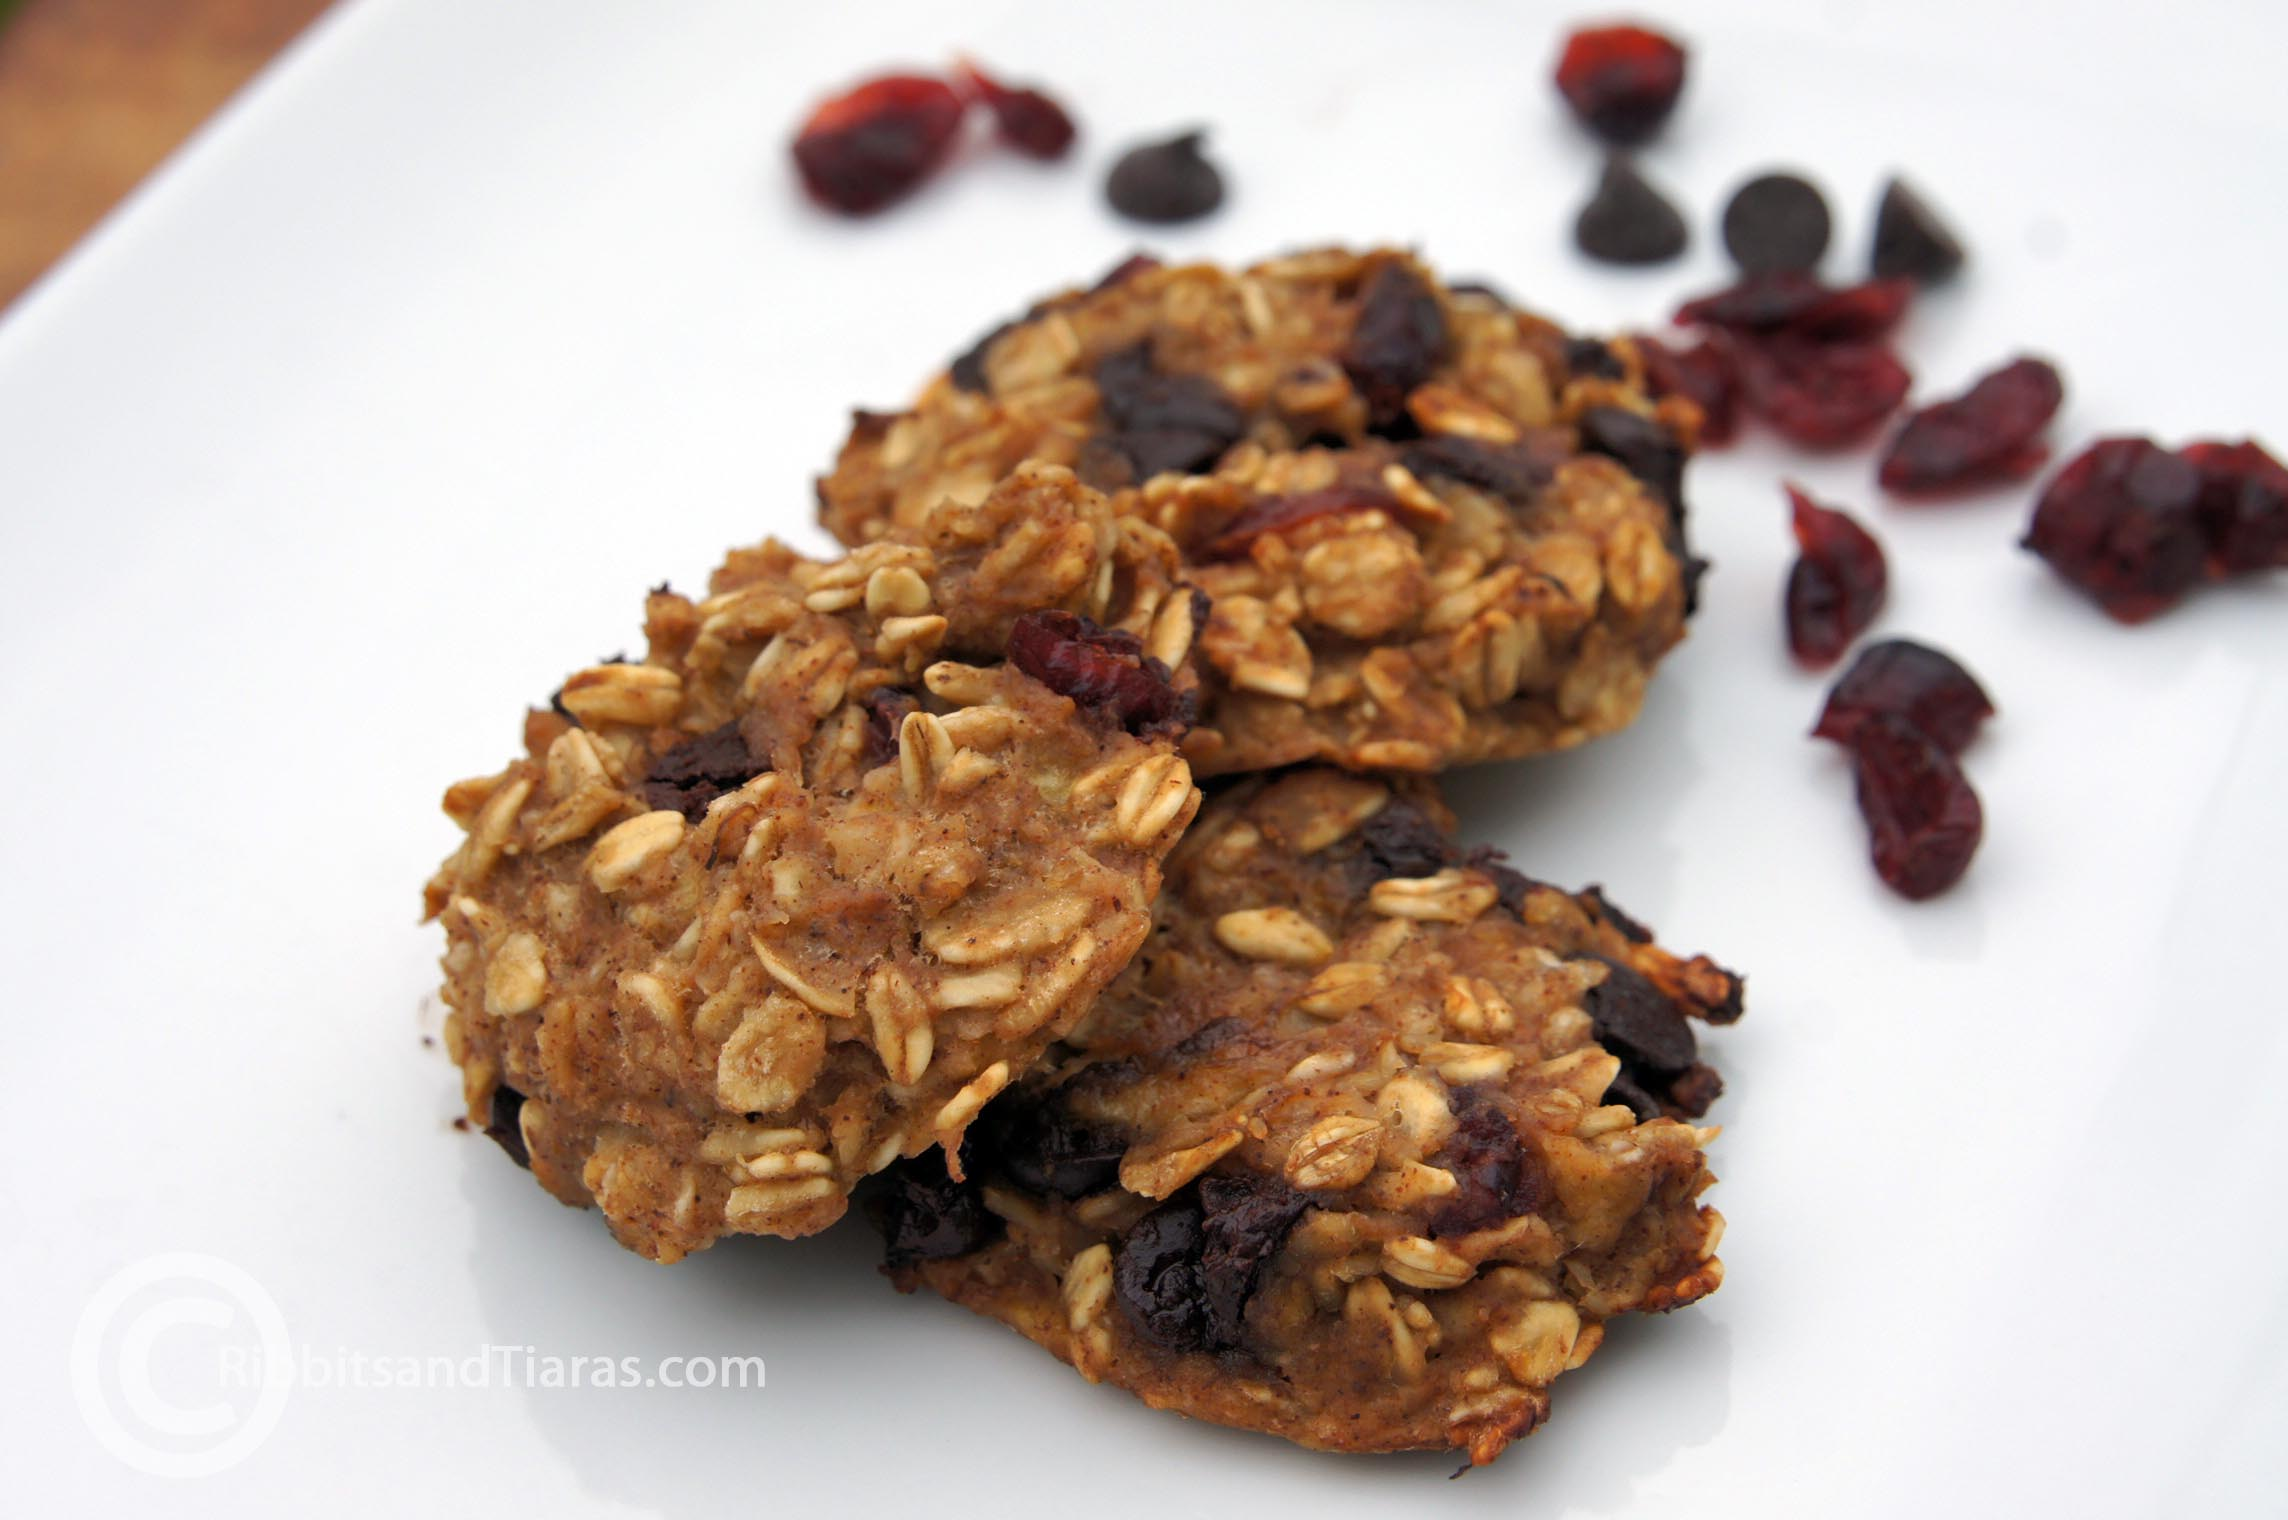 Mesmerizing Banana Oatmeal Cranberry Cookies Banana Cranberry Oatmeal Cookies Egg No No Added Sugar No Egg Cookies Peanut Butter No Egg Cookies Blueberry nice food No Egg Cookies